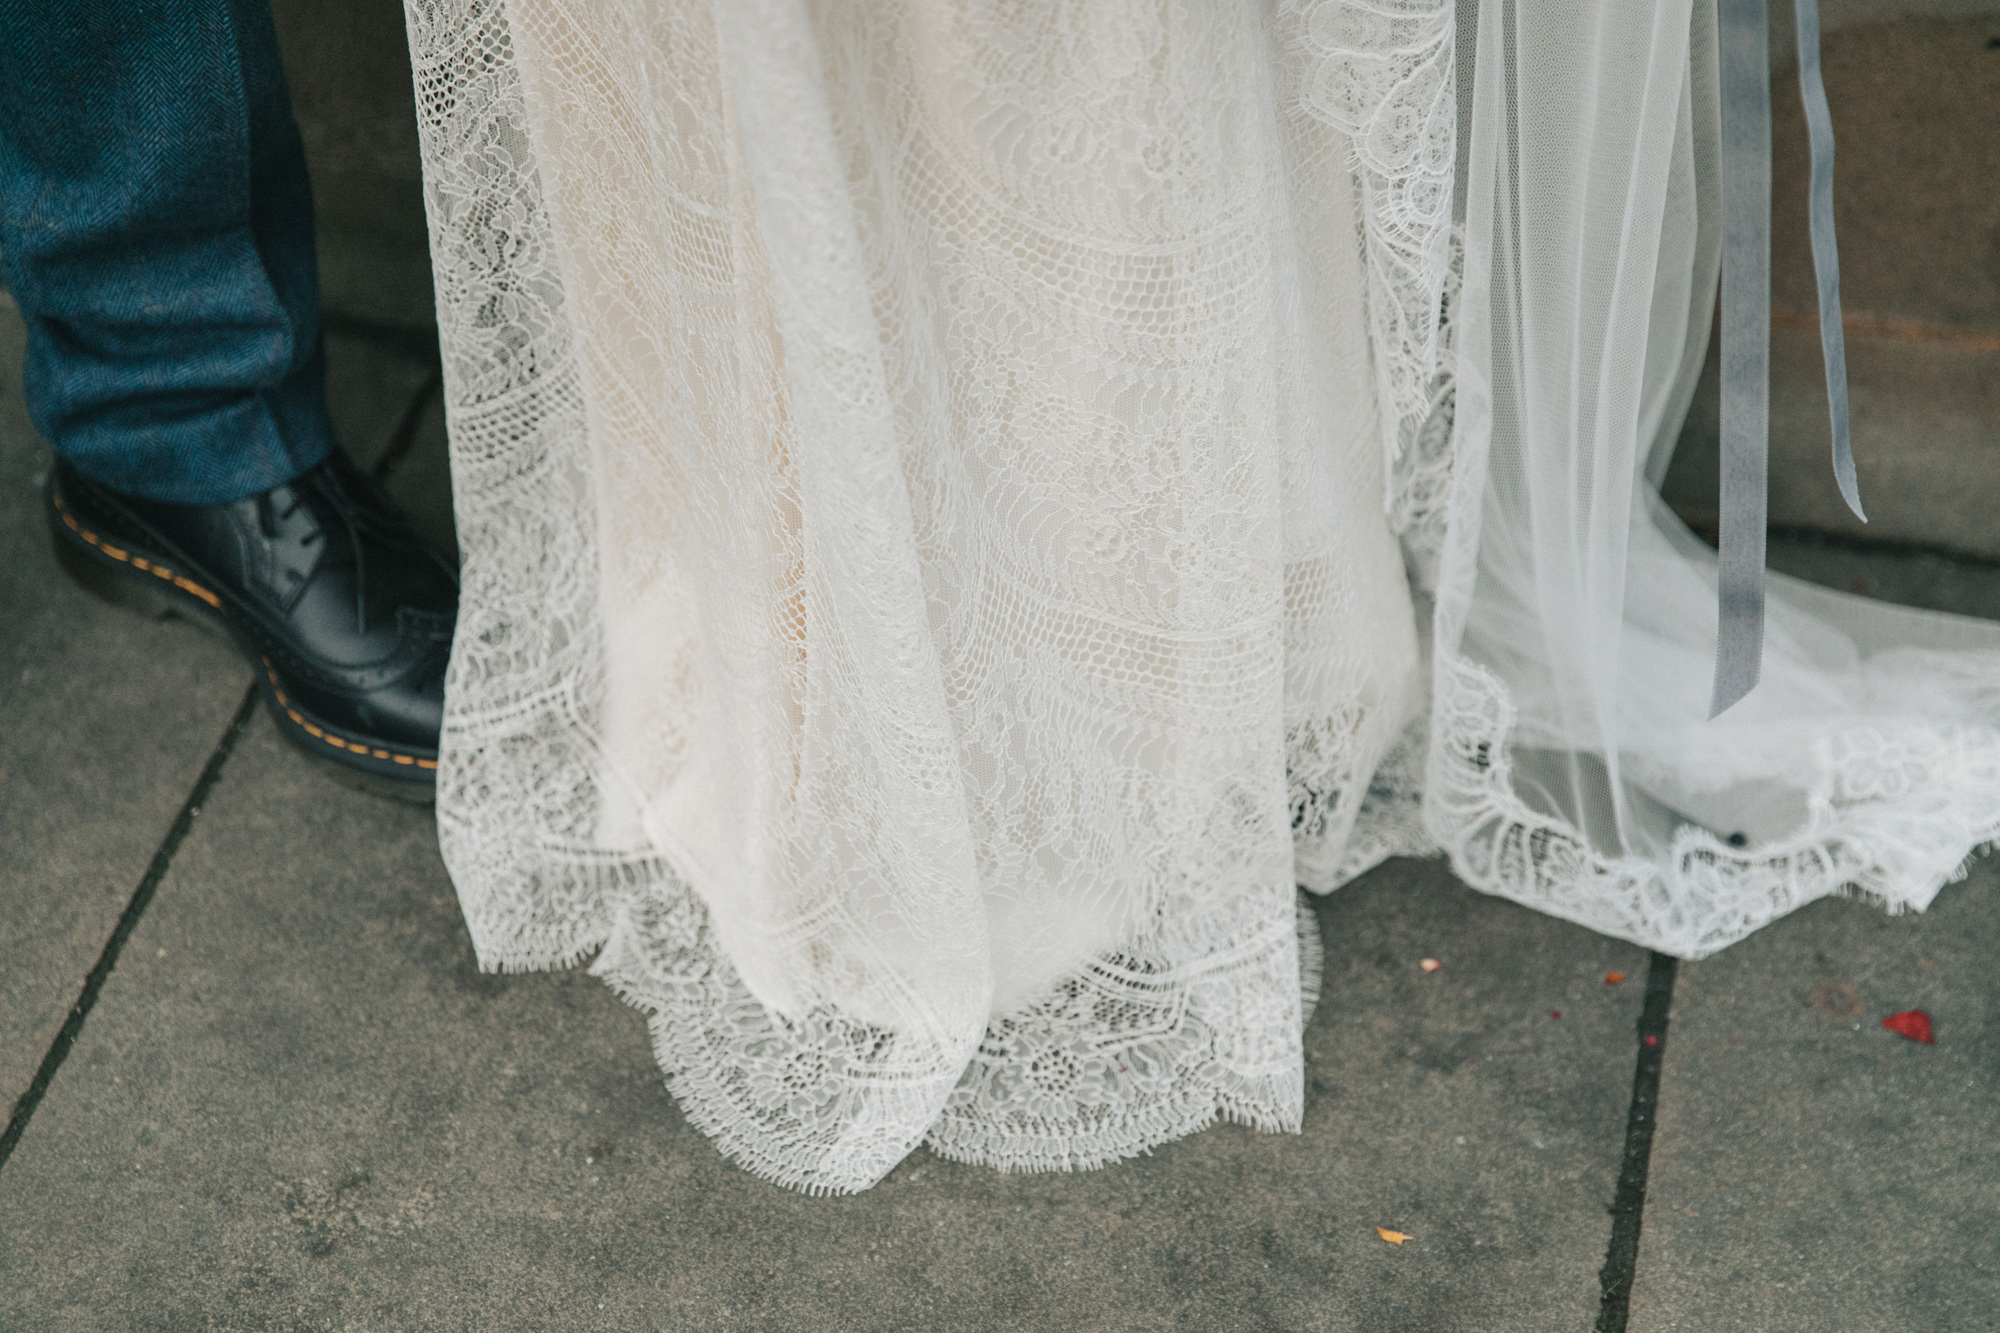 Kathryn-Kate-Beaumont-Astrantia-Lace-Wedding-Dress-Cape-Veil-Sheffield-Circus-Wedding-39.jpg